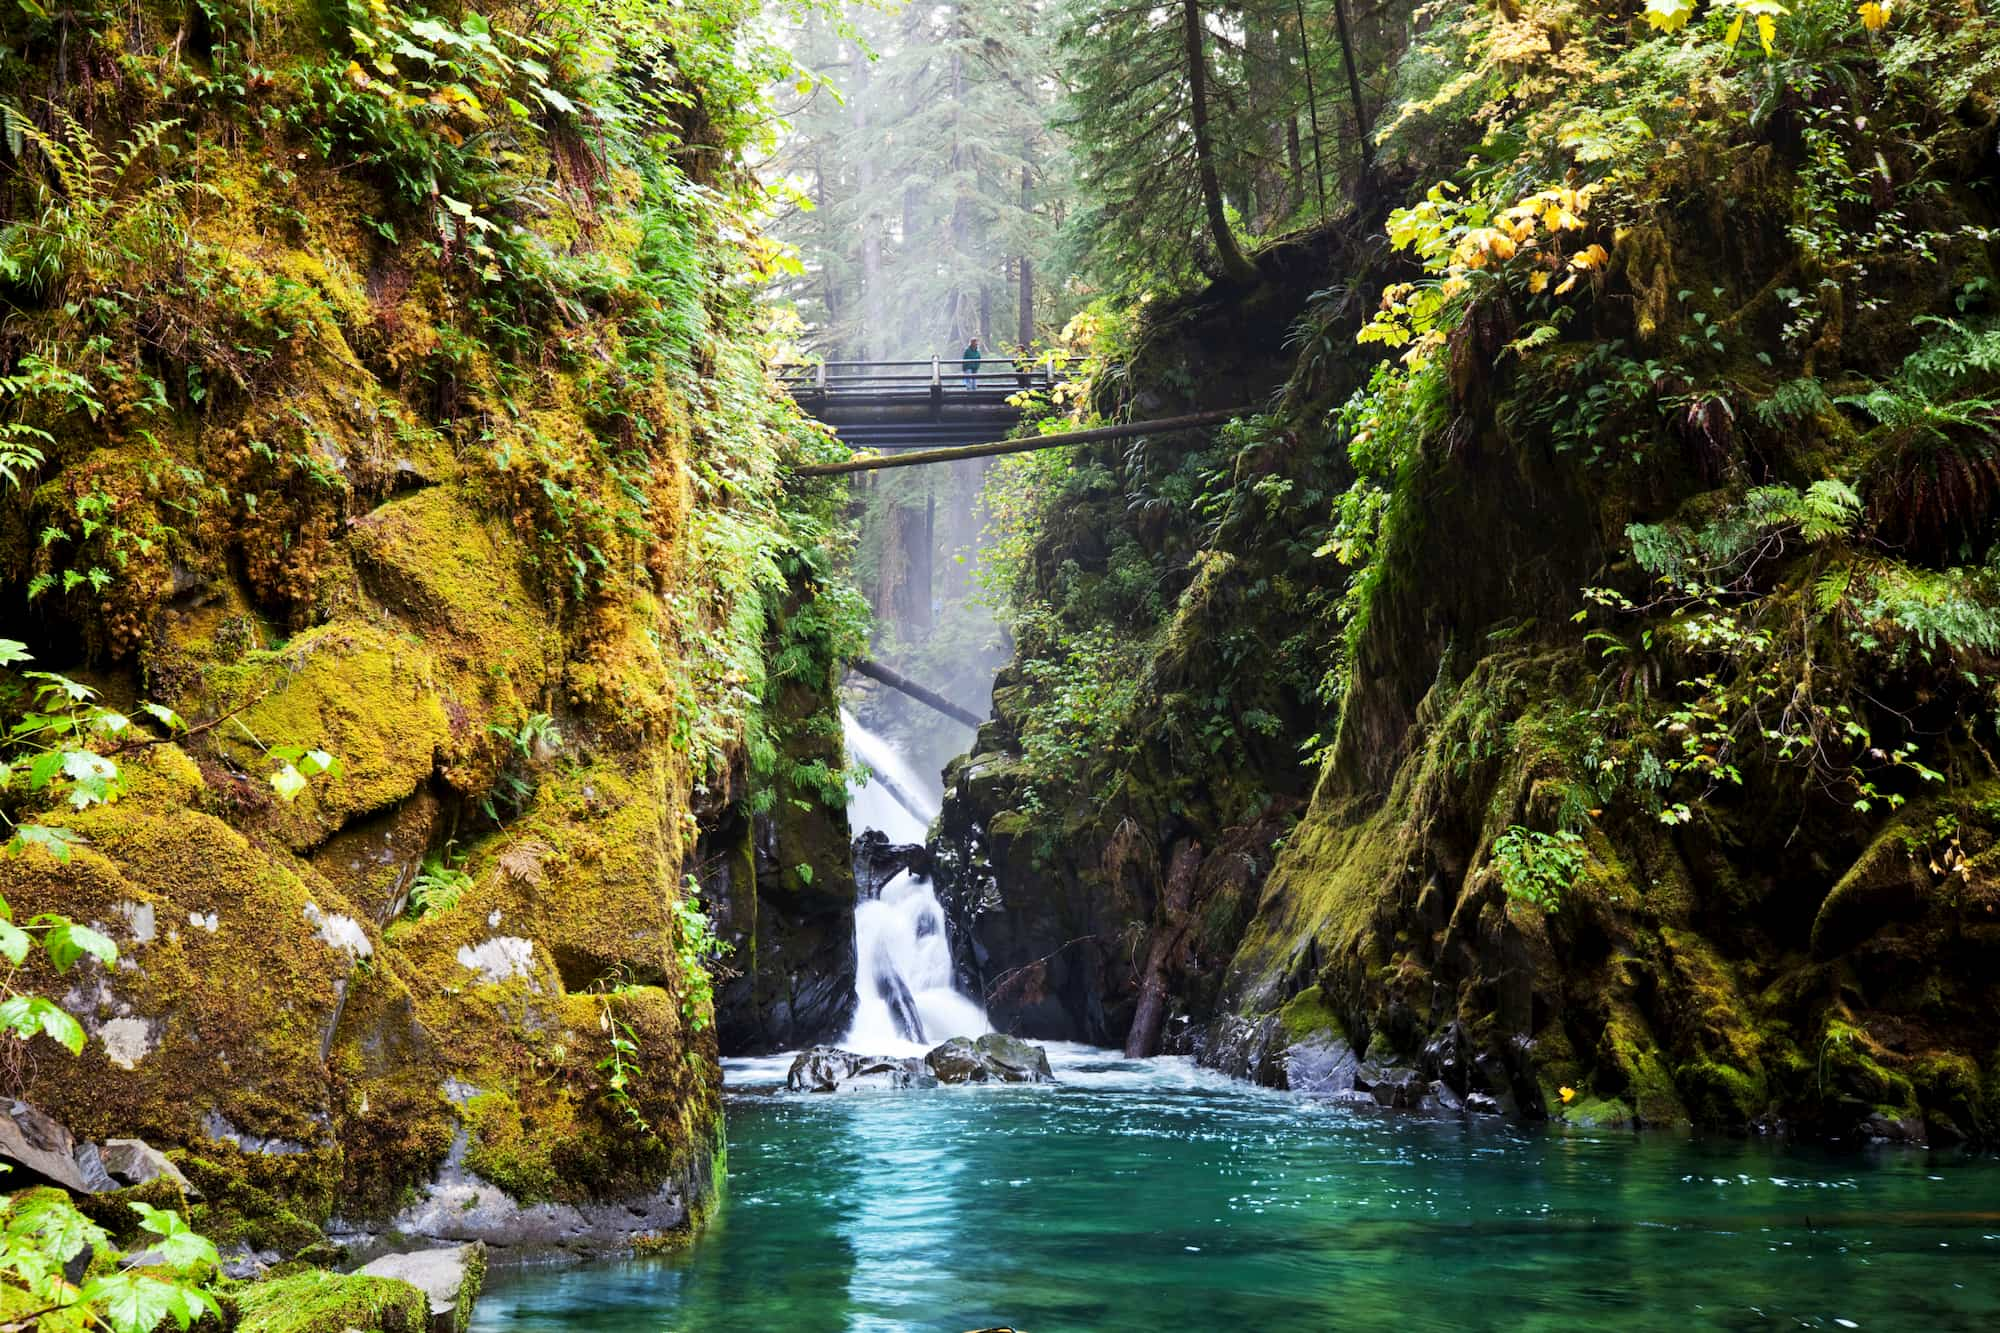 Mossy, tree-lined canyon with blue river and bridge in background